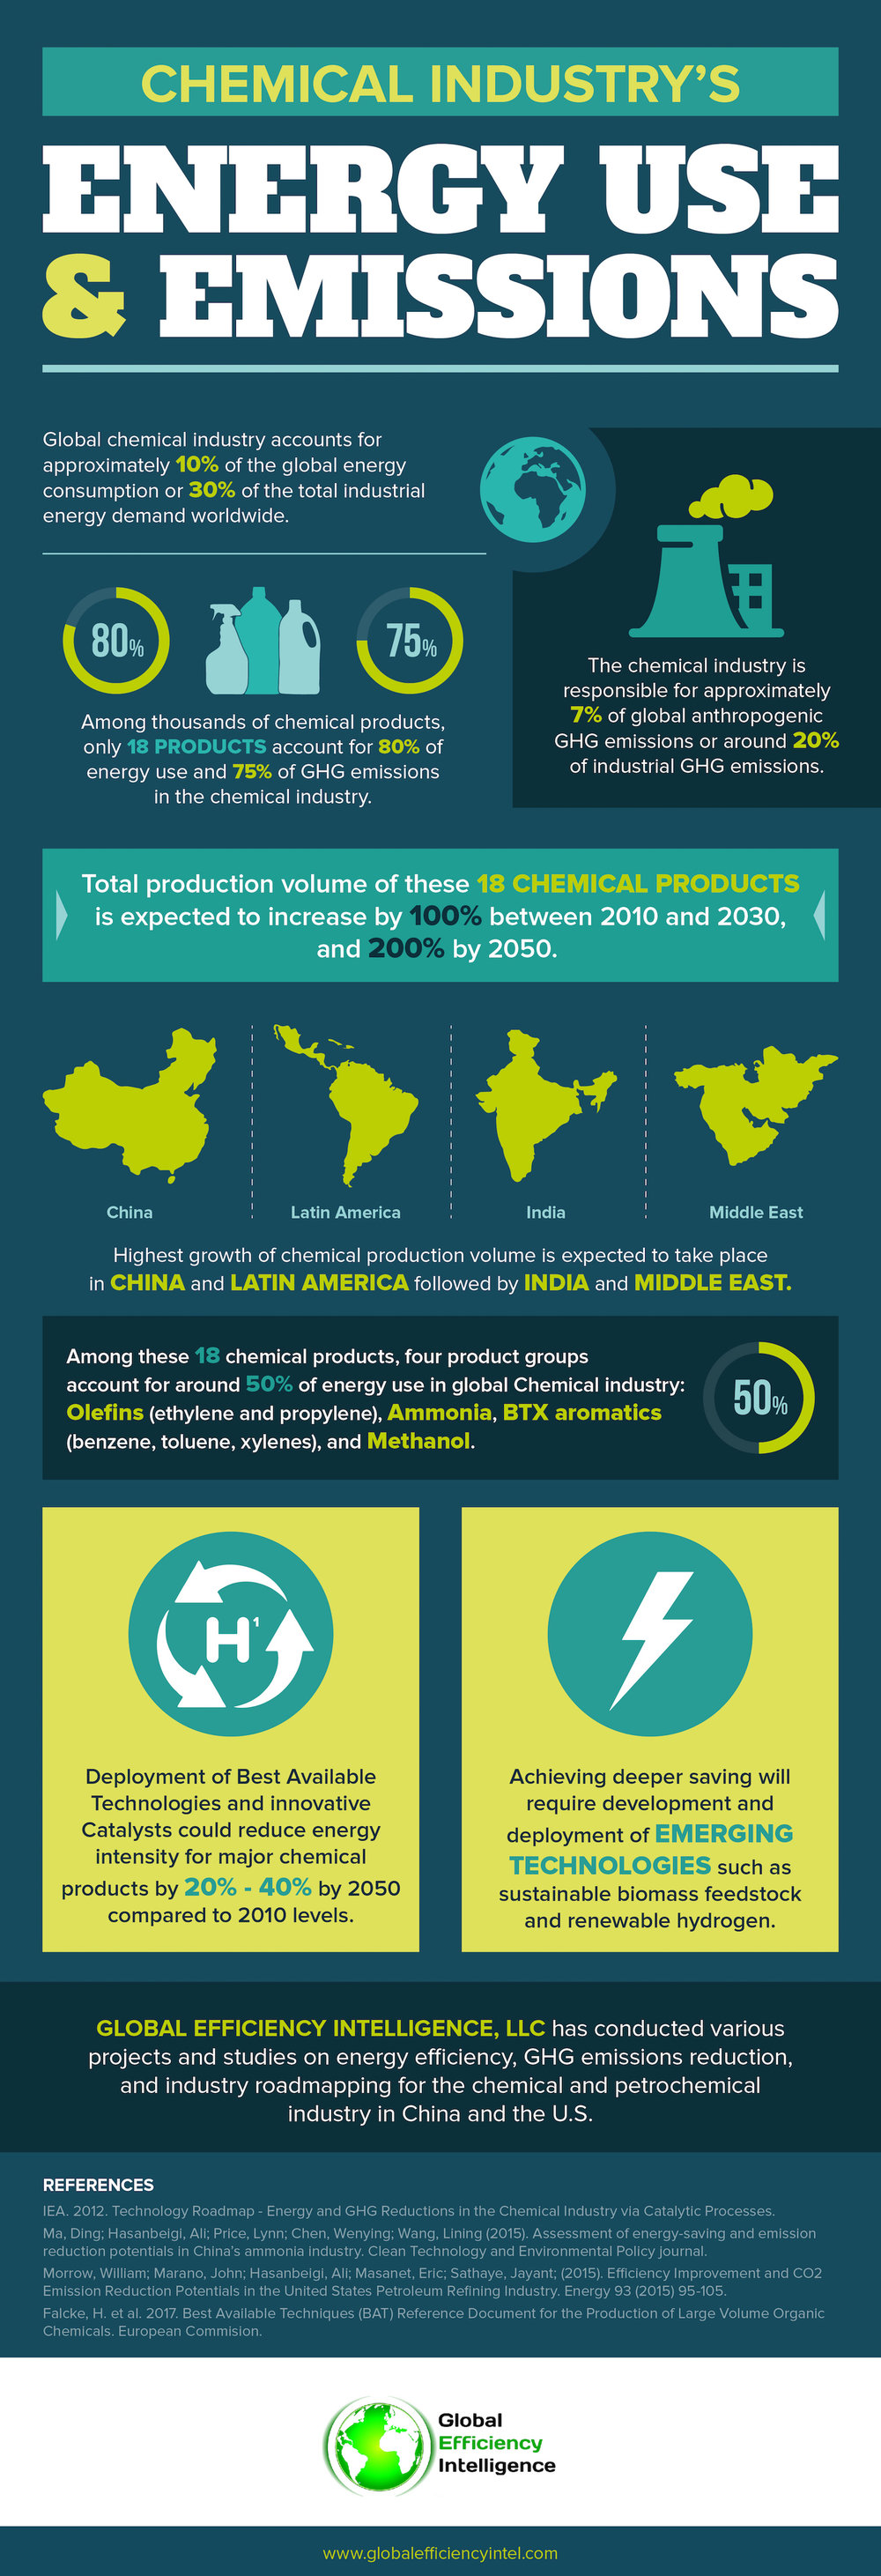 Chemical Industrys Energy Use and Emissions-small.jpg